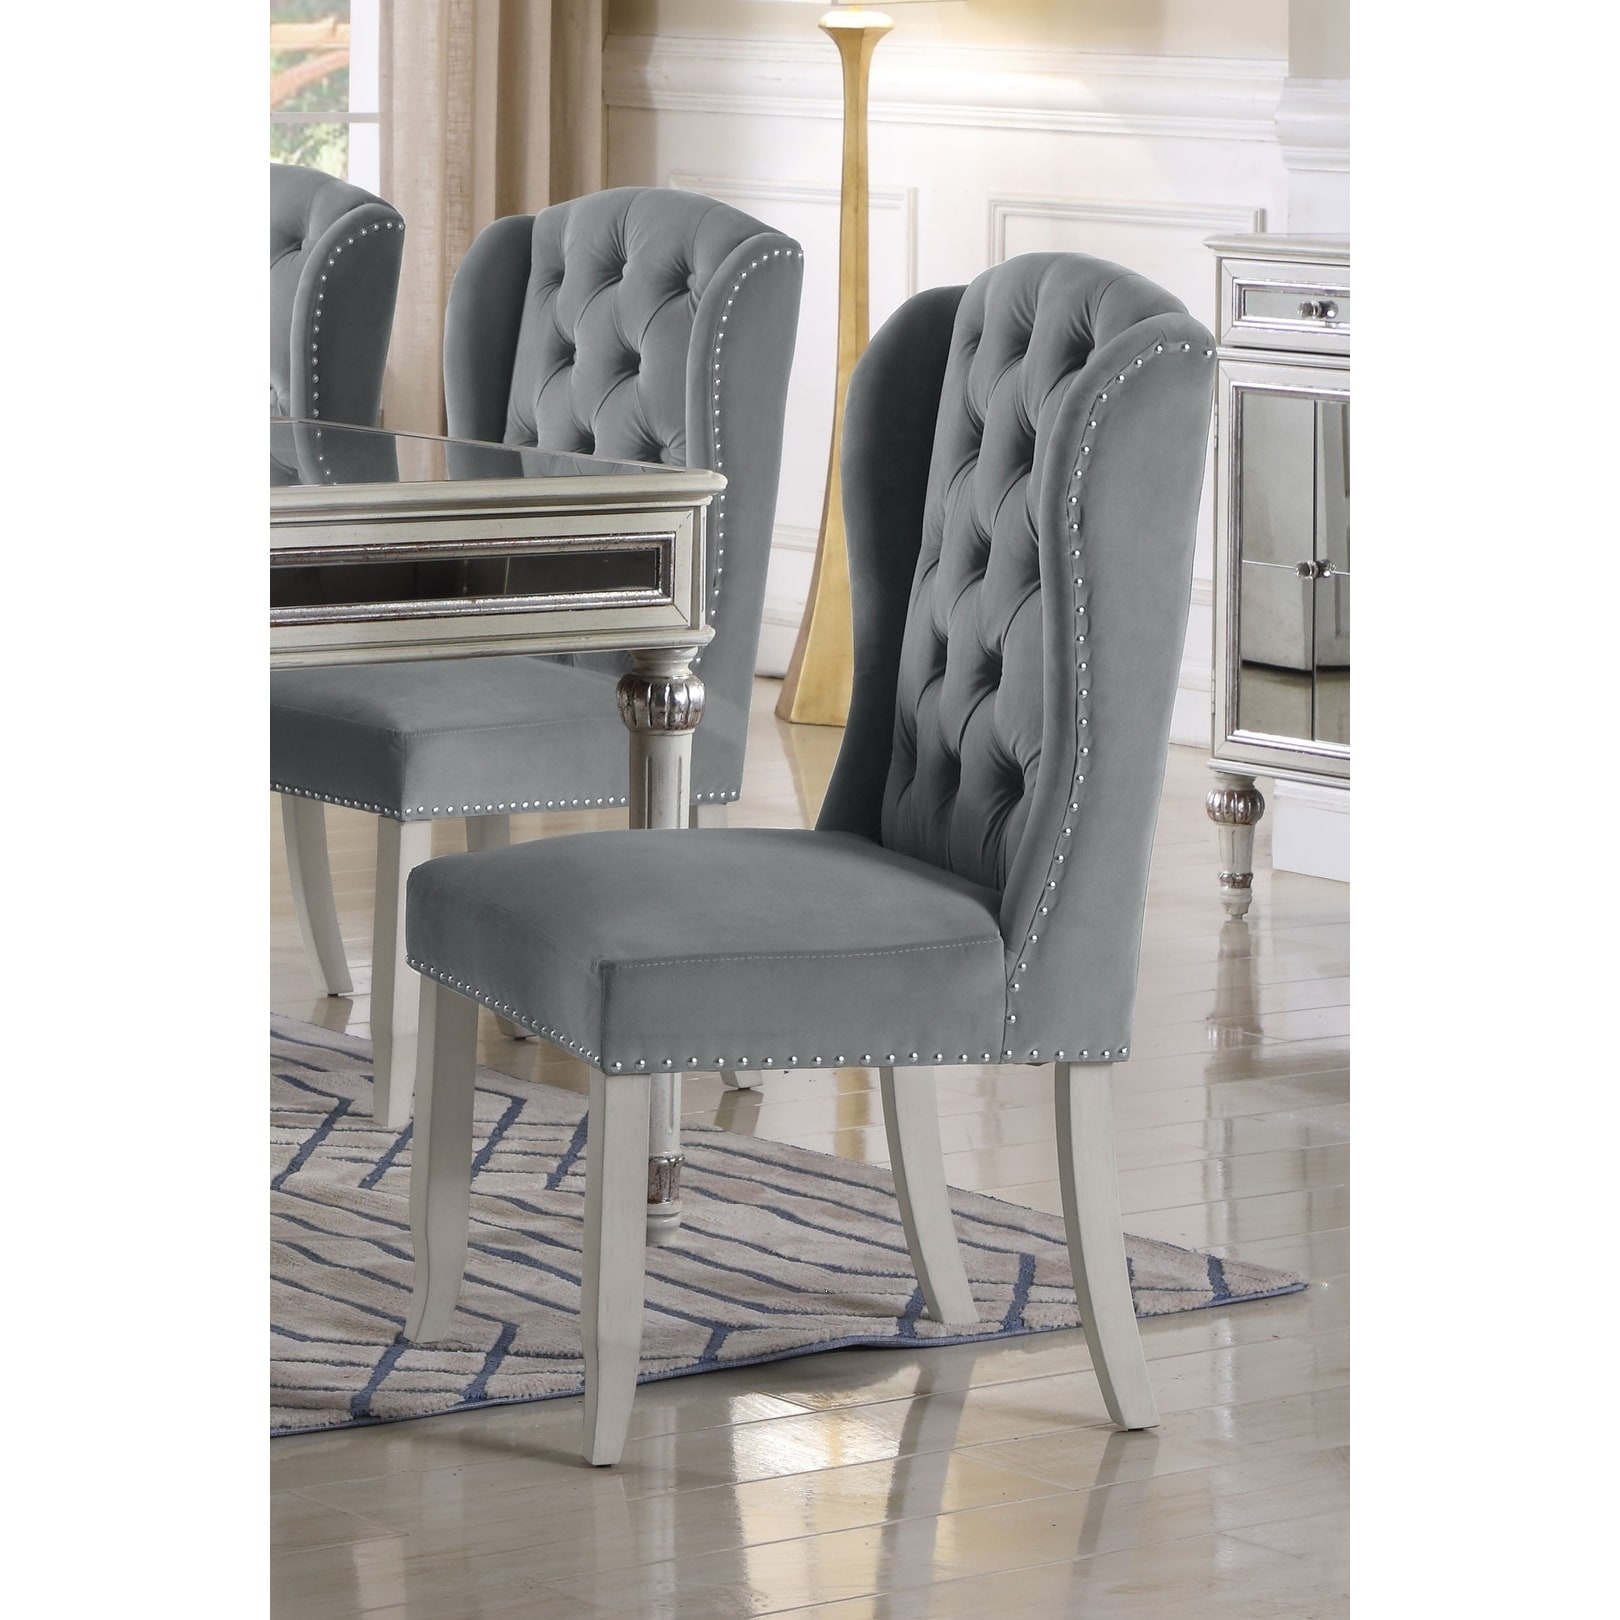 Best Master Furniture Wingback Side Chair (Set of 2) (Nailheads/Tufted - Traditional/French Country - Upholstered/Wood - Side Chairs - Beige)